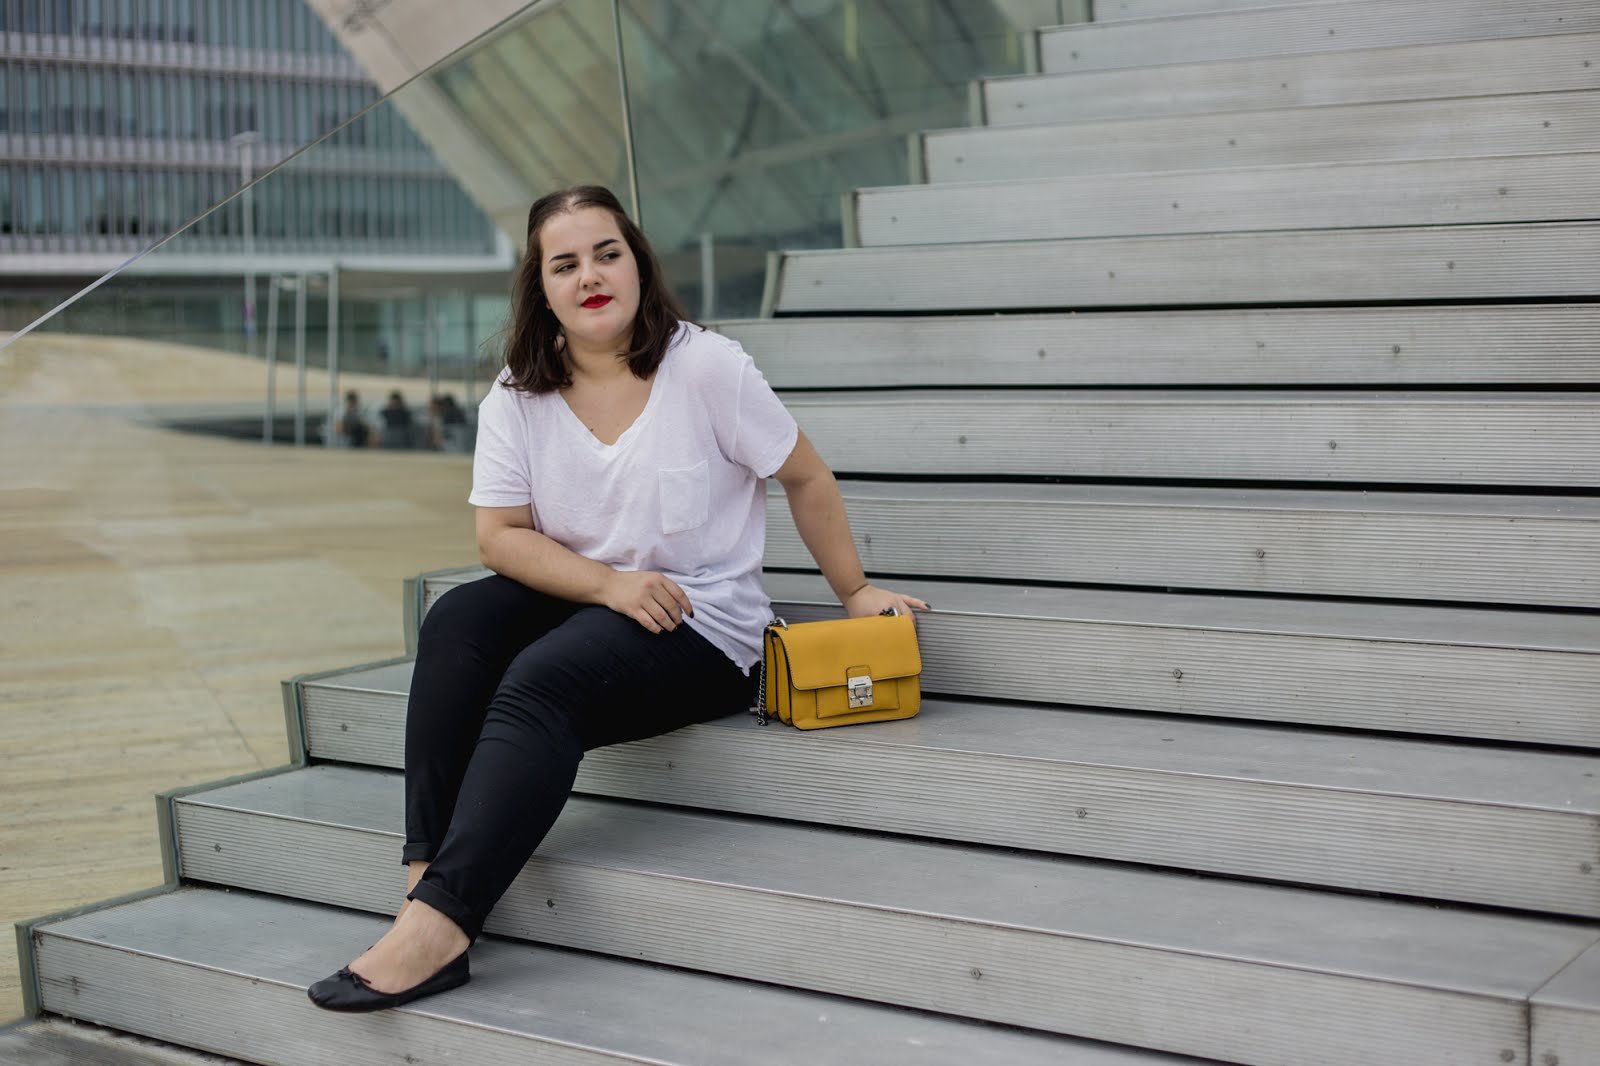 Outfit of the day - Plus size simple outfit with a pop of colour